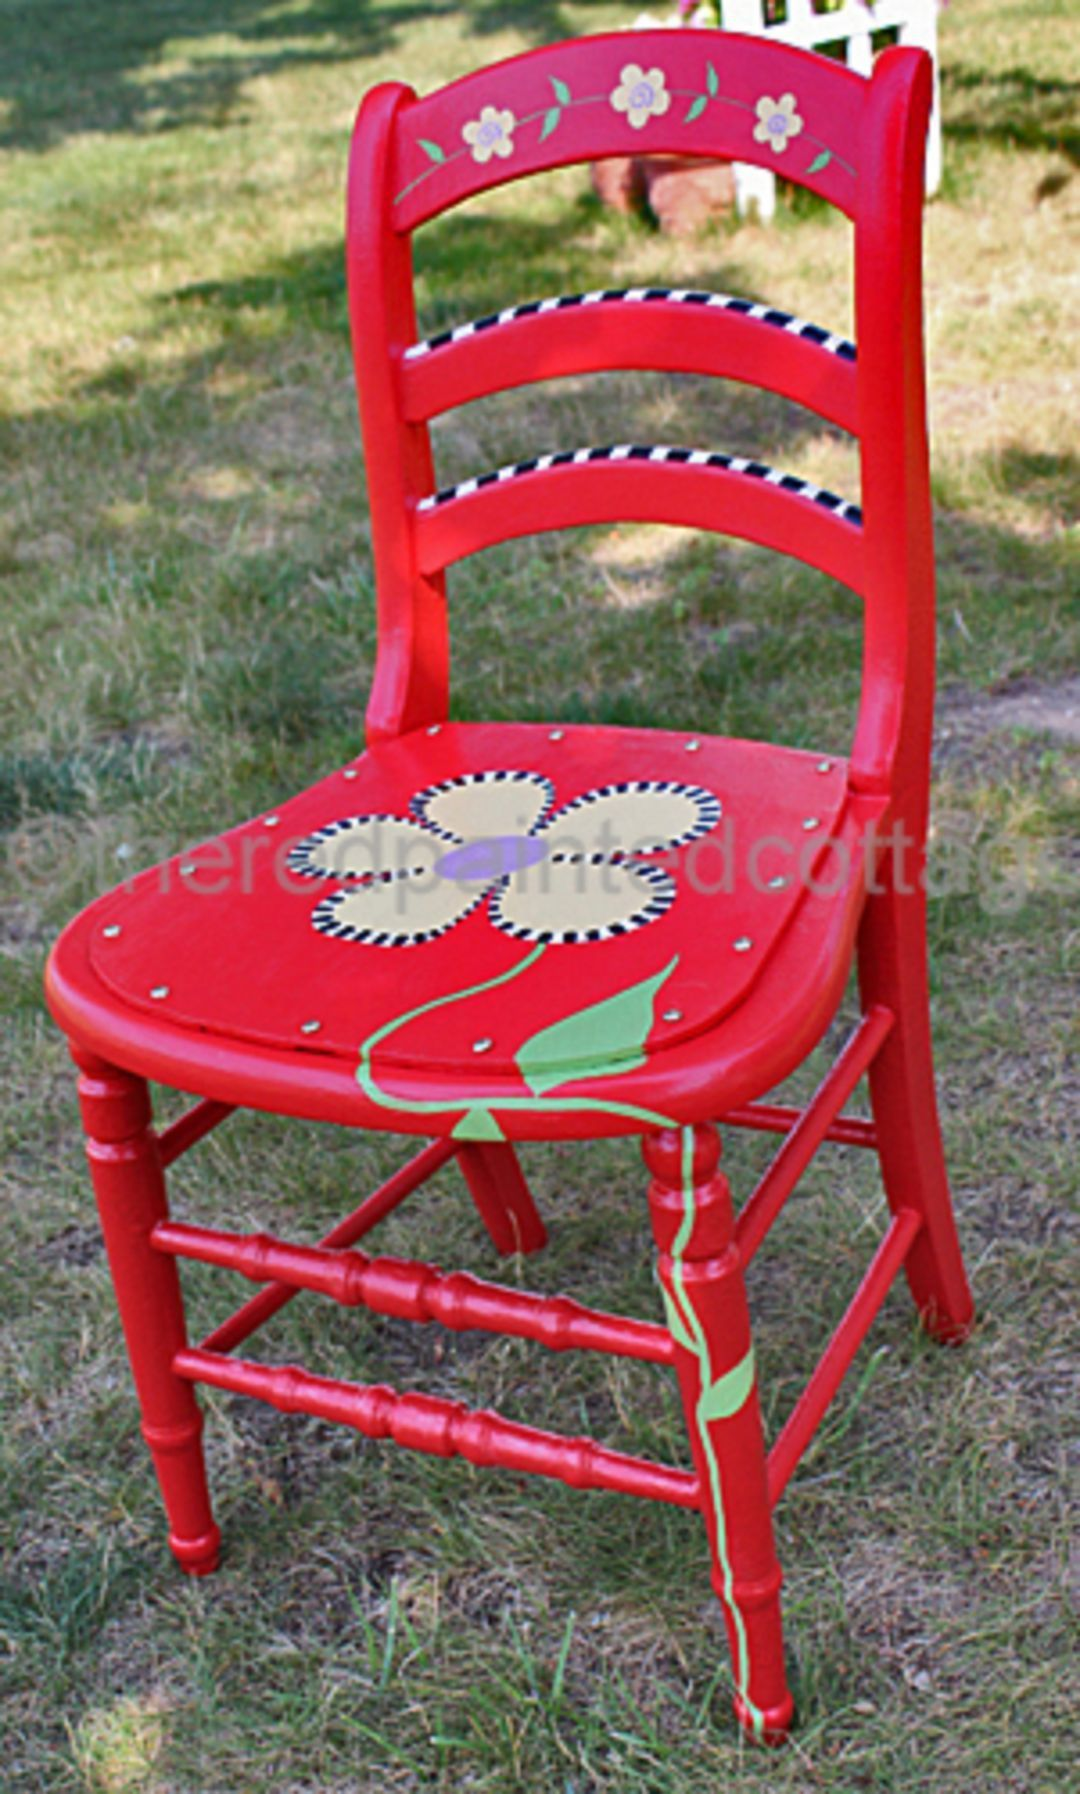 Wooden Flower Painted Whimsical Chairs U2013 DECOOR #WoodenChair